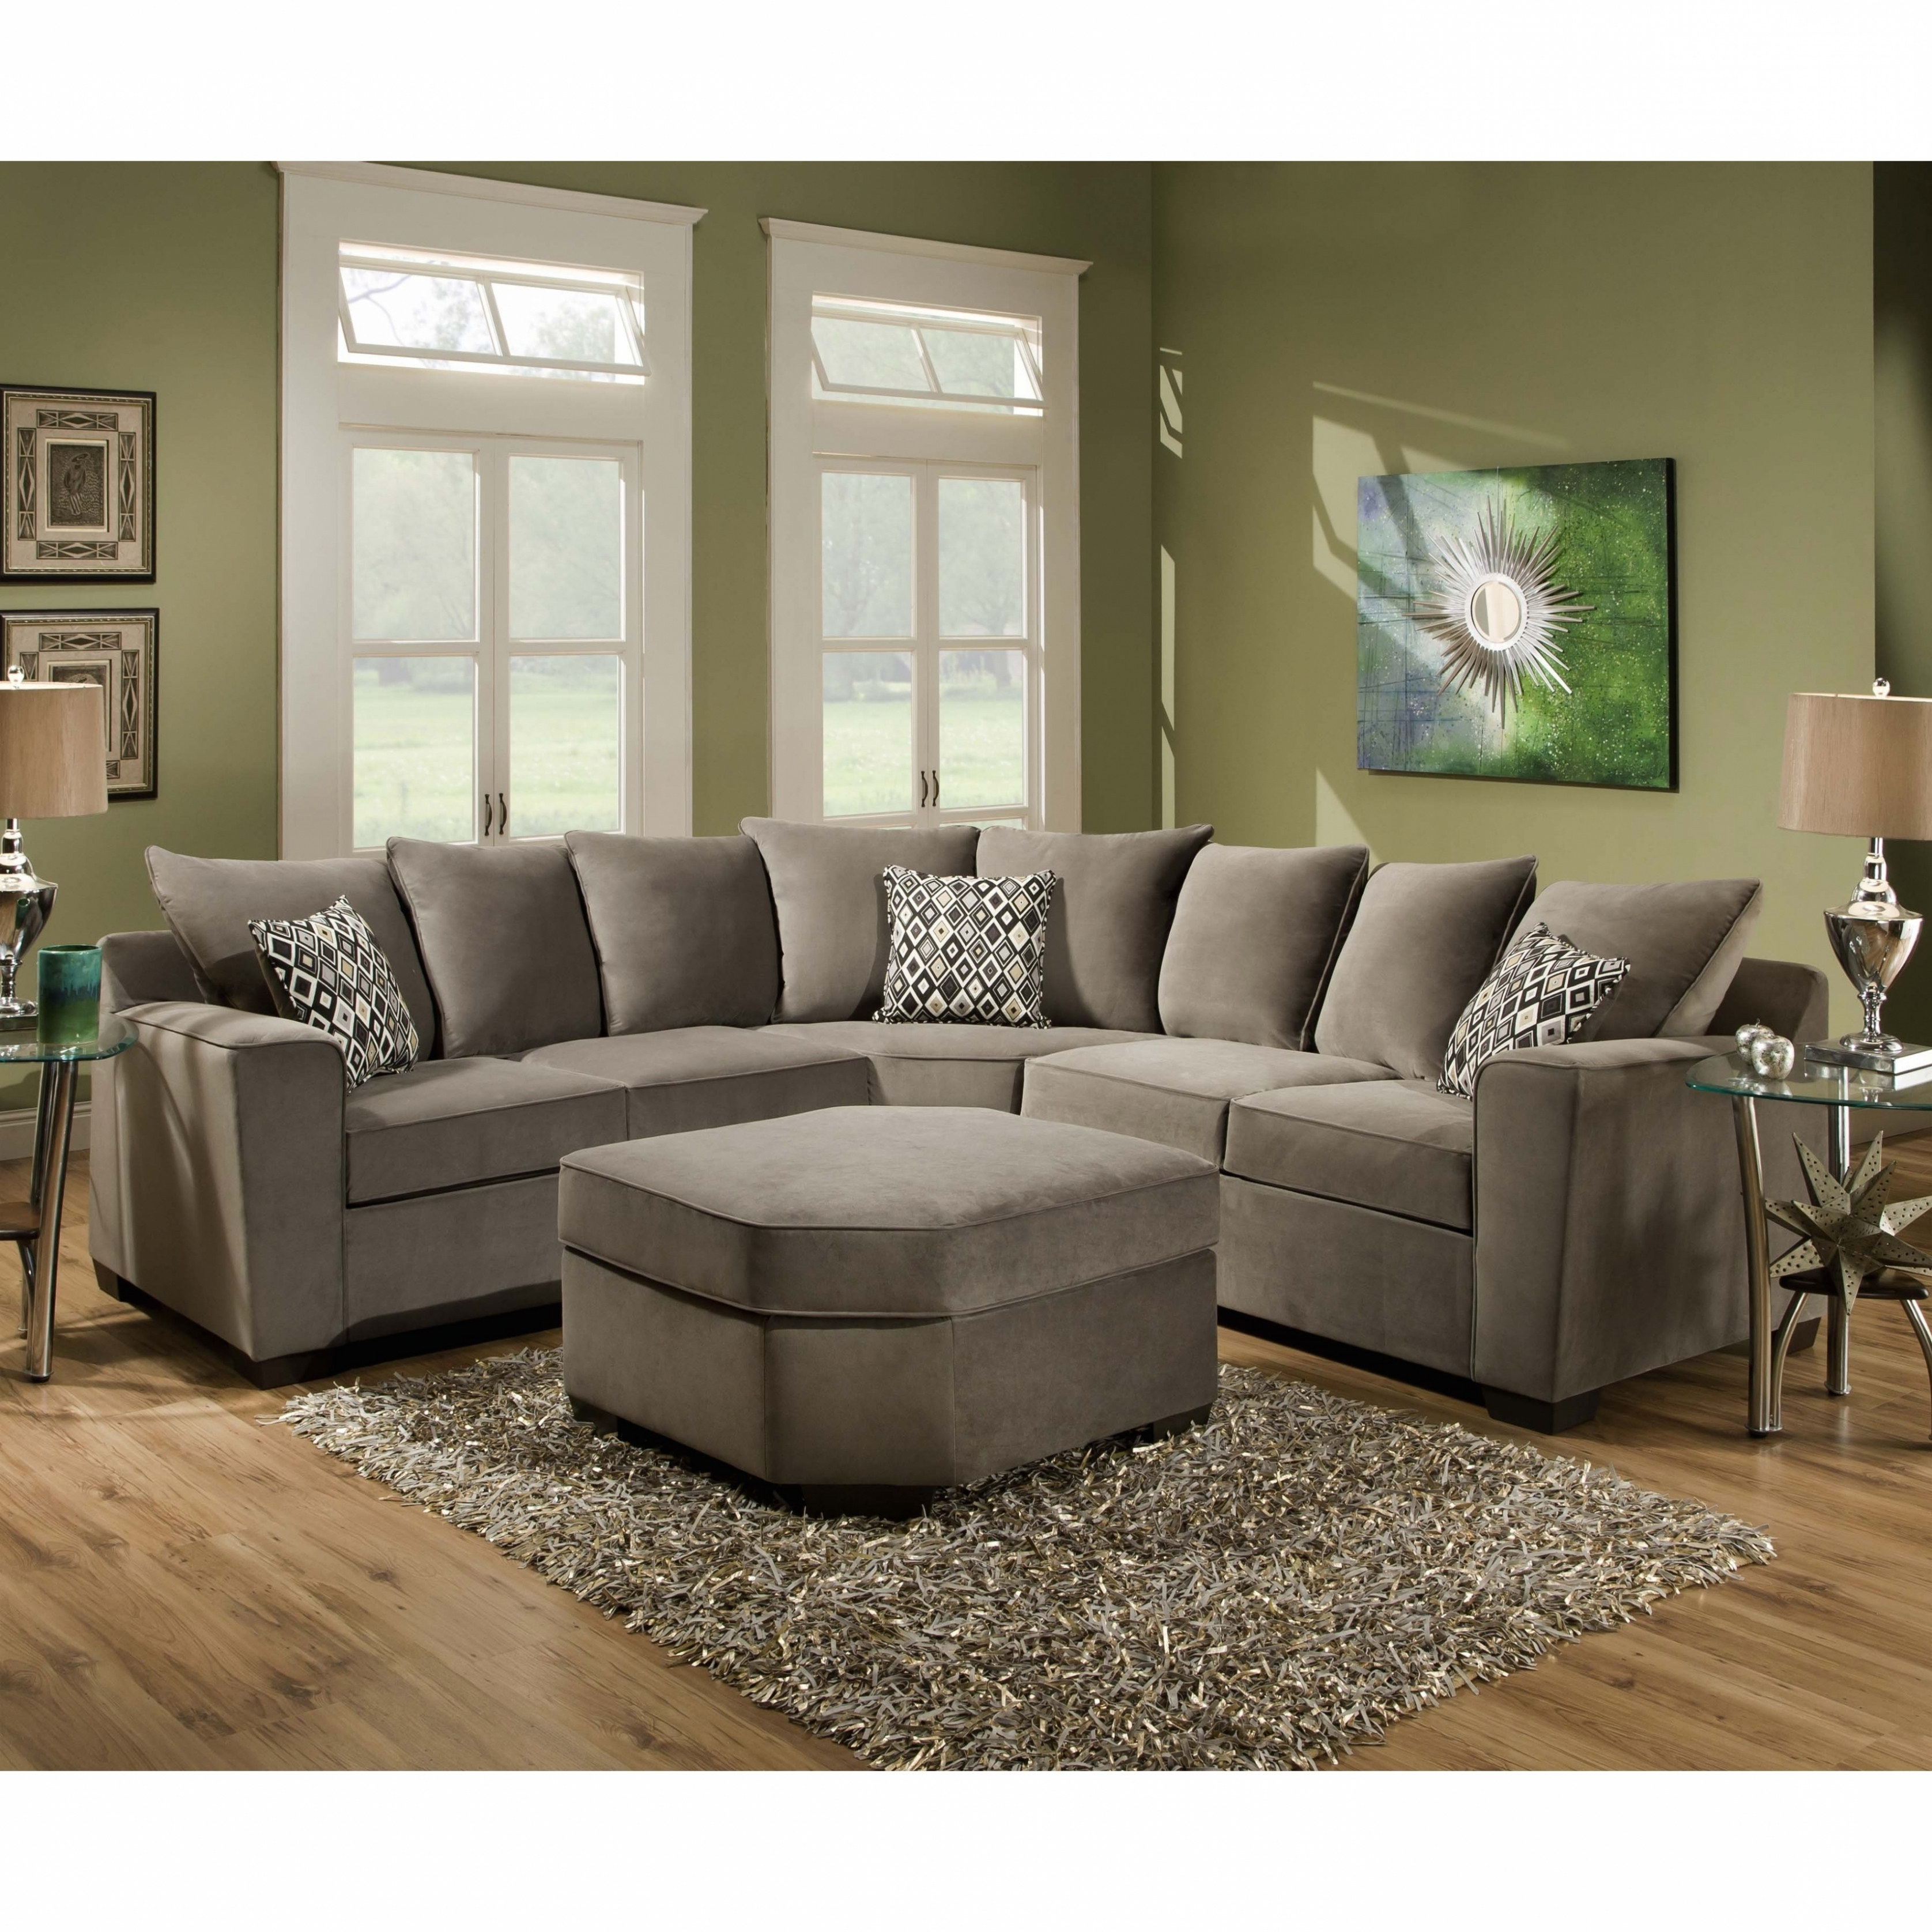 Sofa: Havertys Sectional Sofas Nrhcares Within Lovely Havertys Inside Recent Sectional Sofas At Havertys (View 12 of 15)